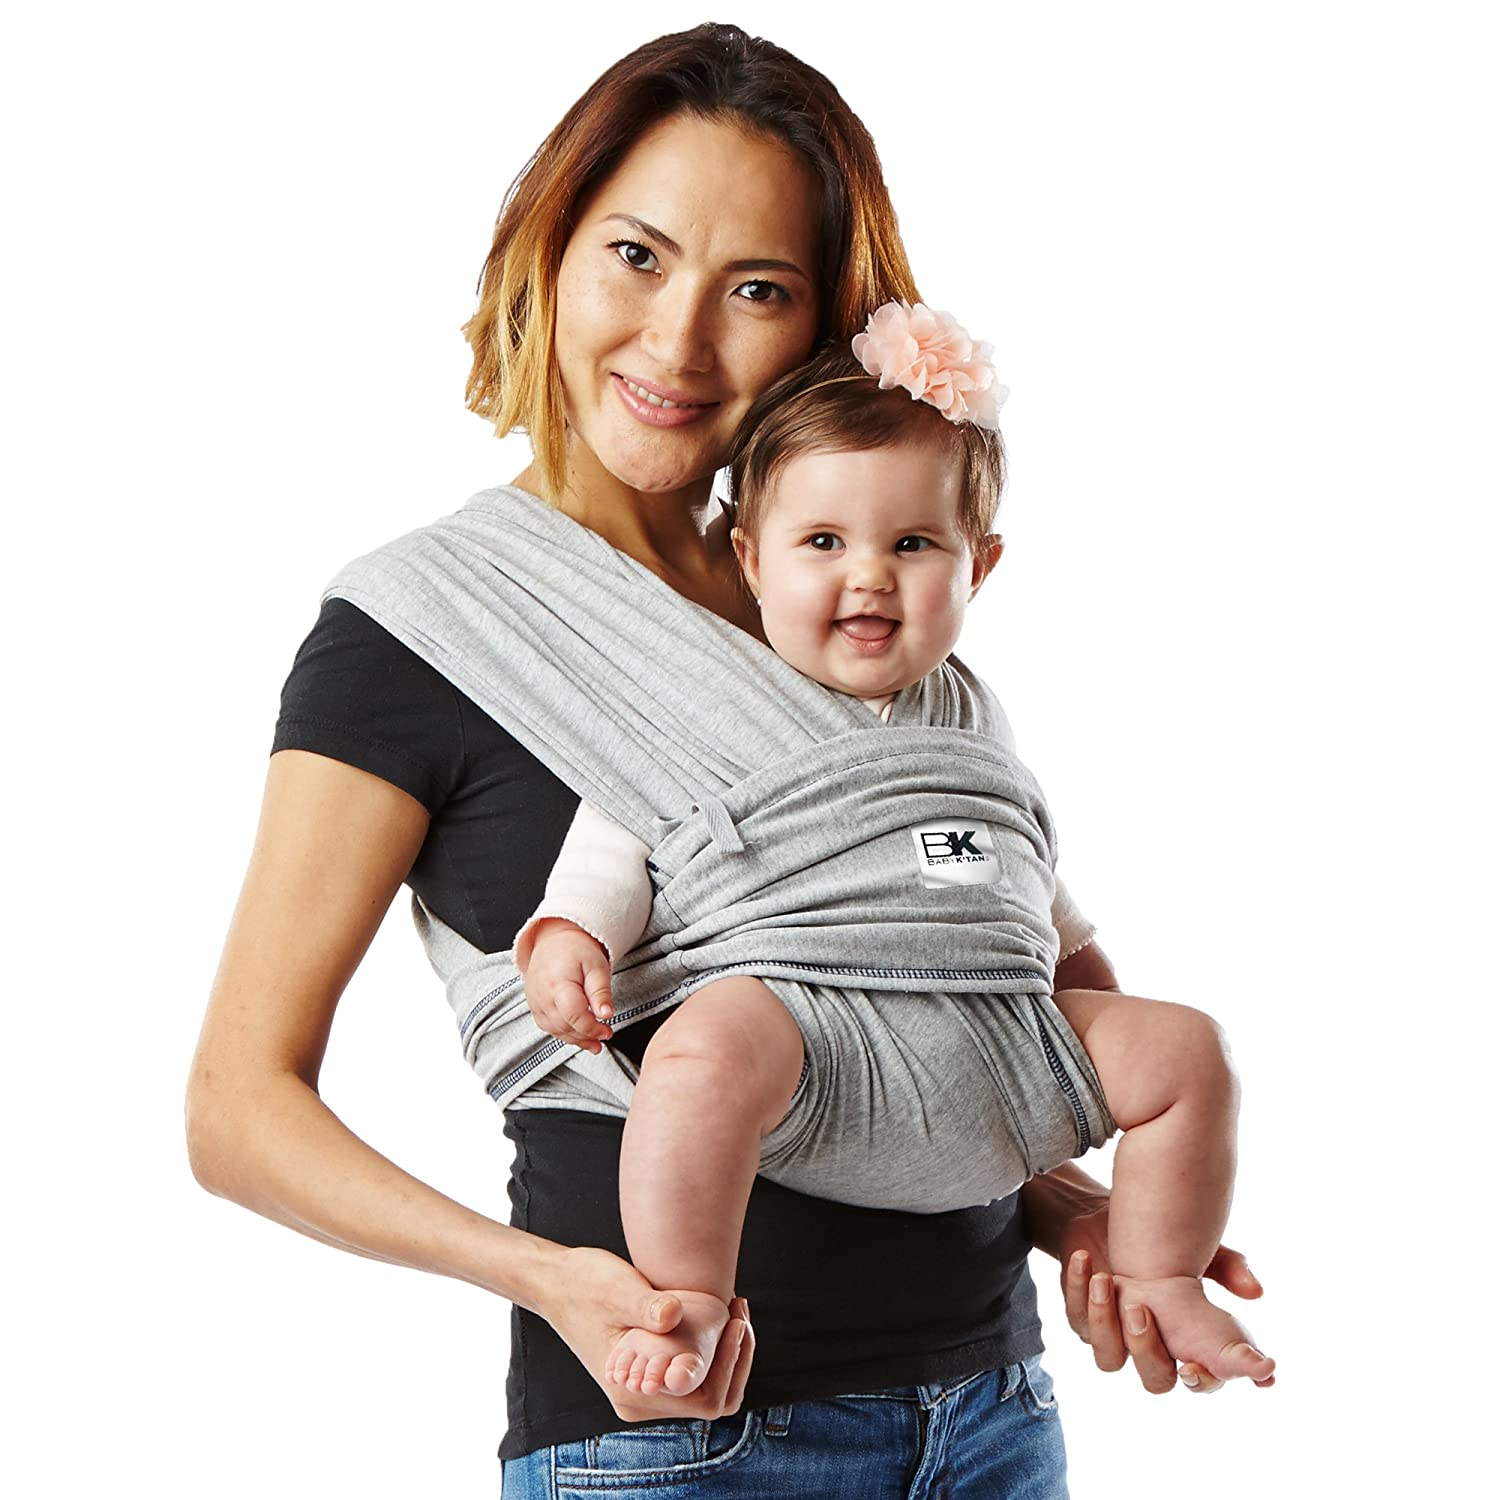 Baby K'tan ORIGINAL Cotton Wrap style Baby Carrier, Denim, X-small Baby K'tan BKBC-DM-XS